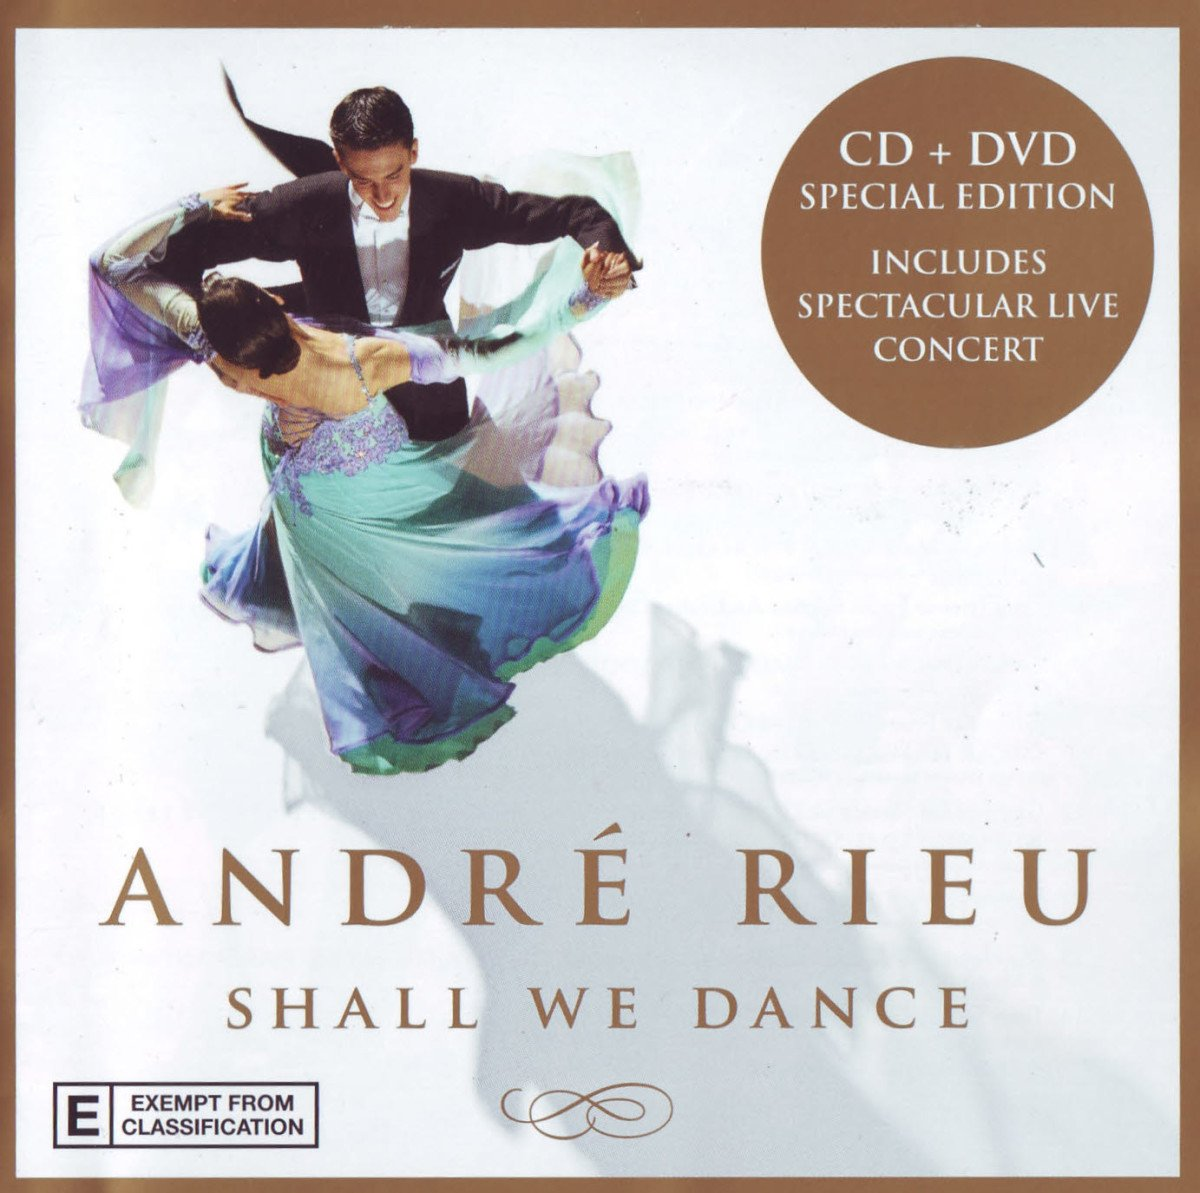 CD : Andre Rieu - Shall We Dance (With DVD, 2 Disc)